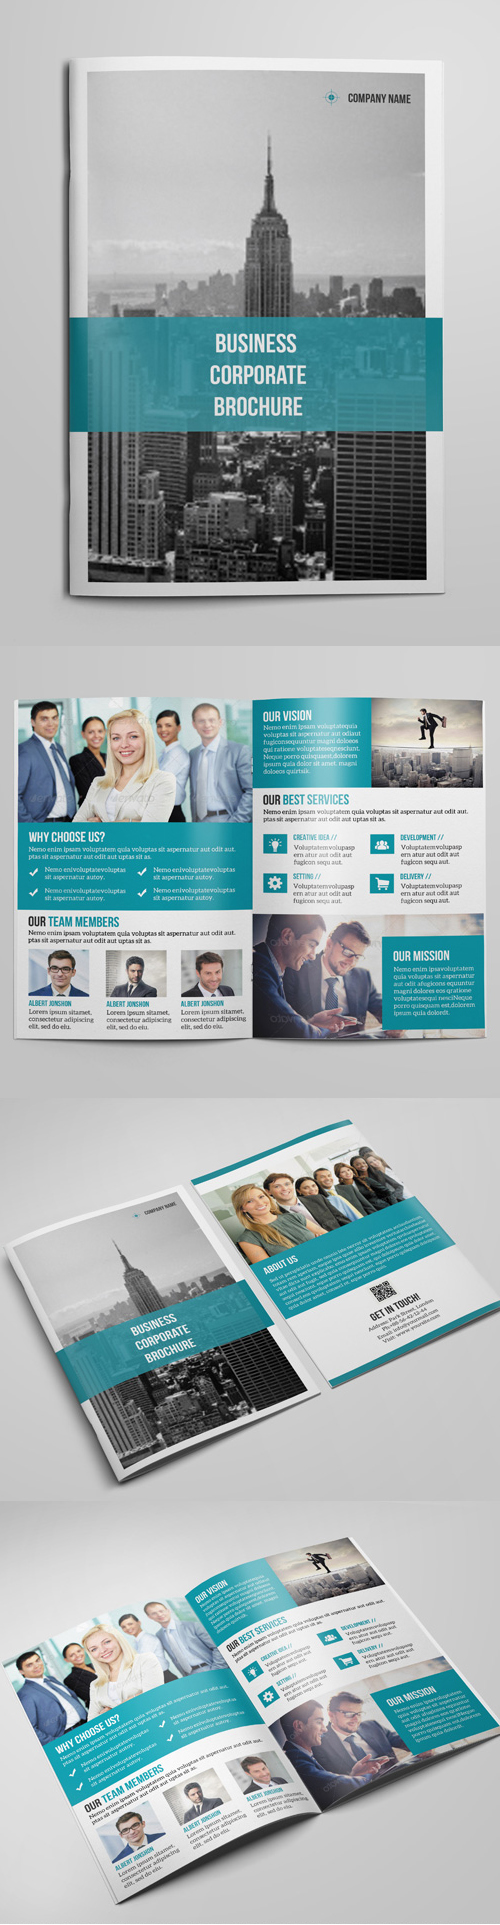 Corporate Bi-Fold Brochure Design